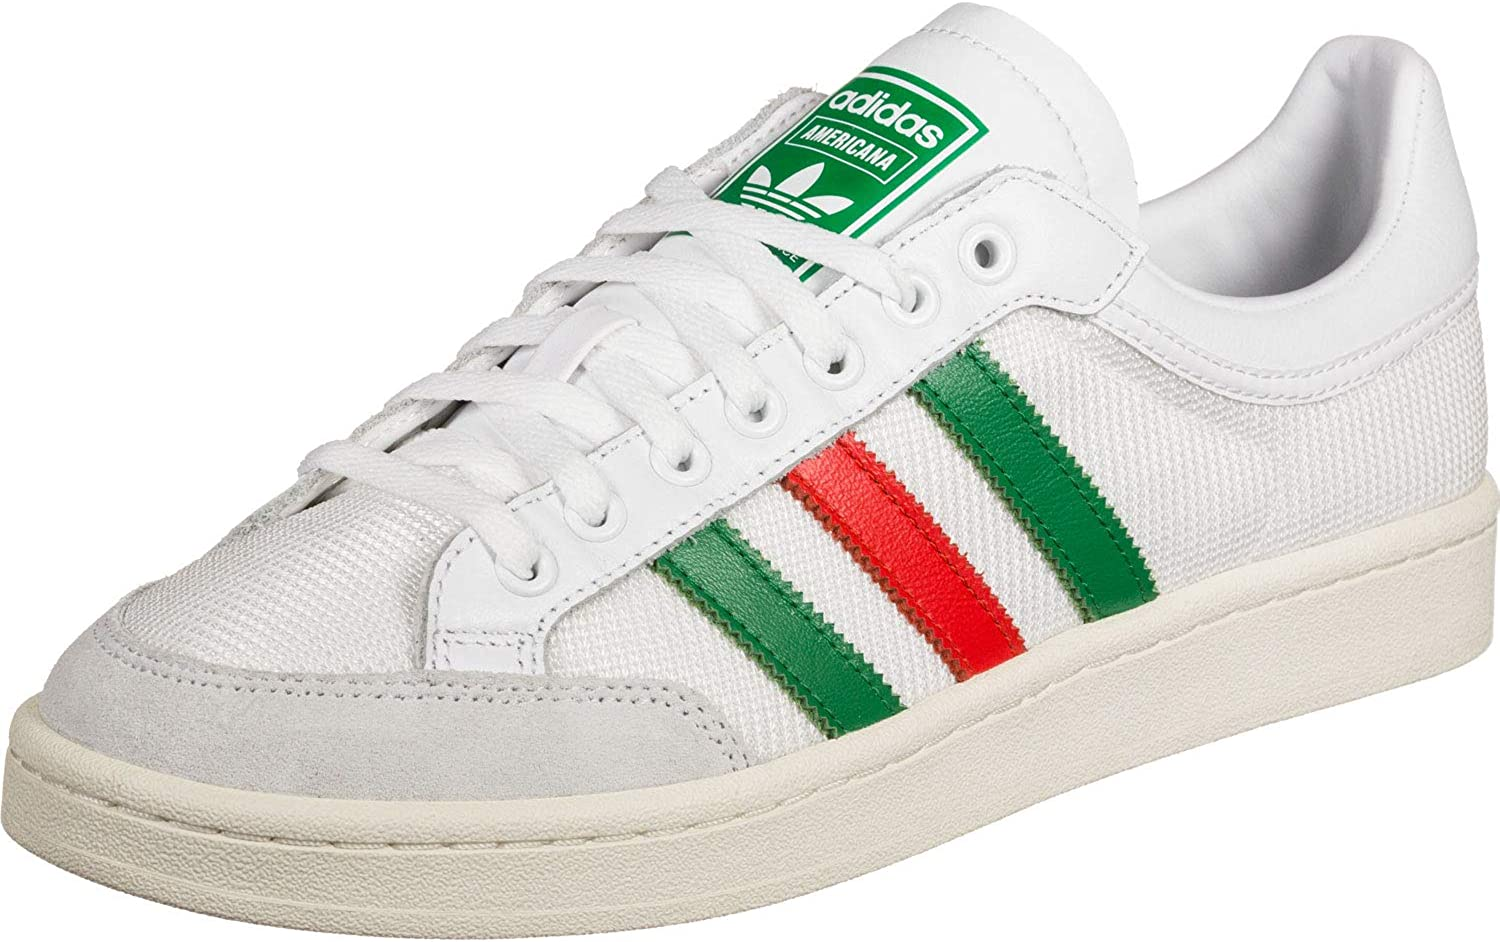 adidas Chaussures Basse Americana low, homme, EF2509, Blanc/vert/rouge, F  41 1/3